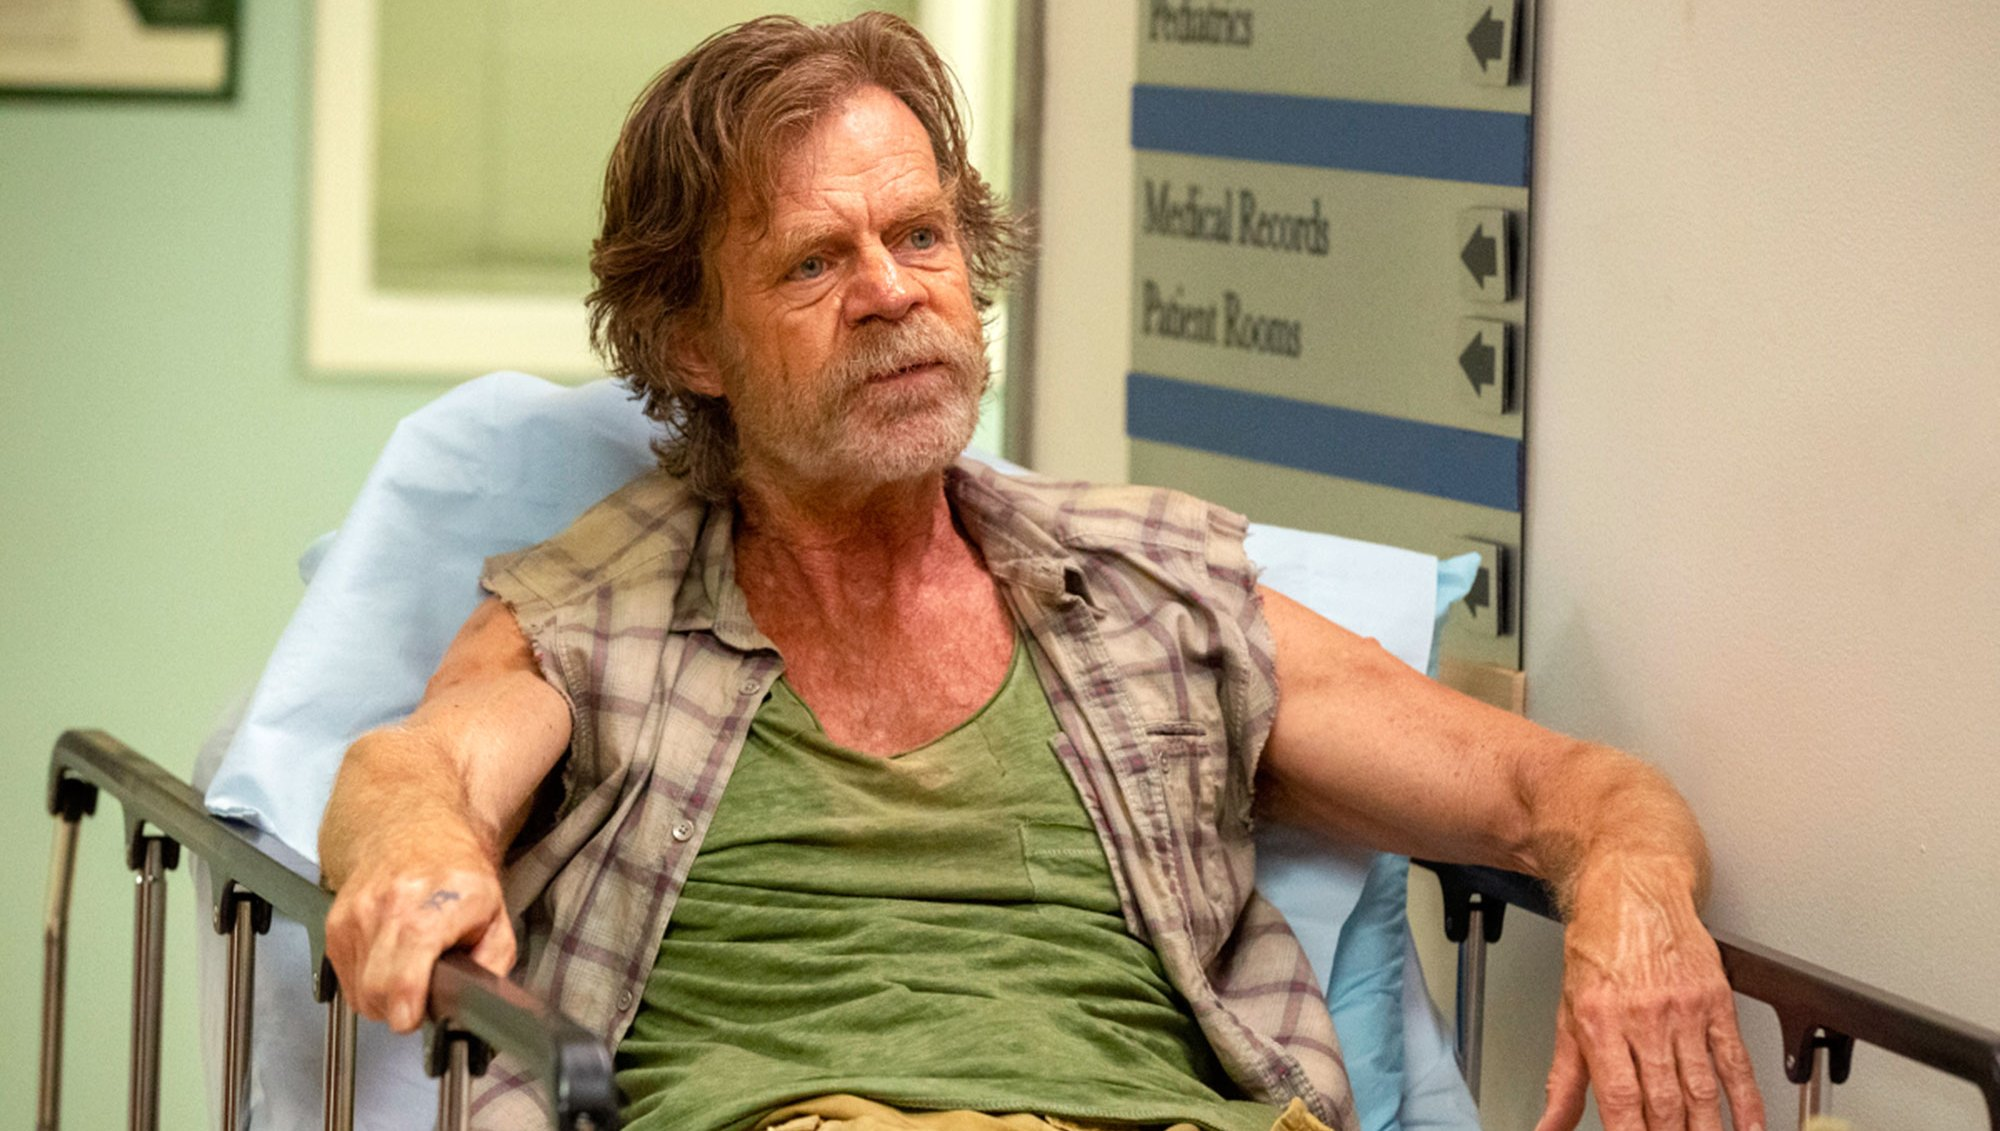 Frank! Twitter Goes Wild With William H. Macy 'Shameless' Memes Amid College Admissions Scam Drama